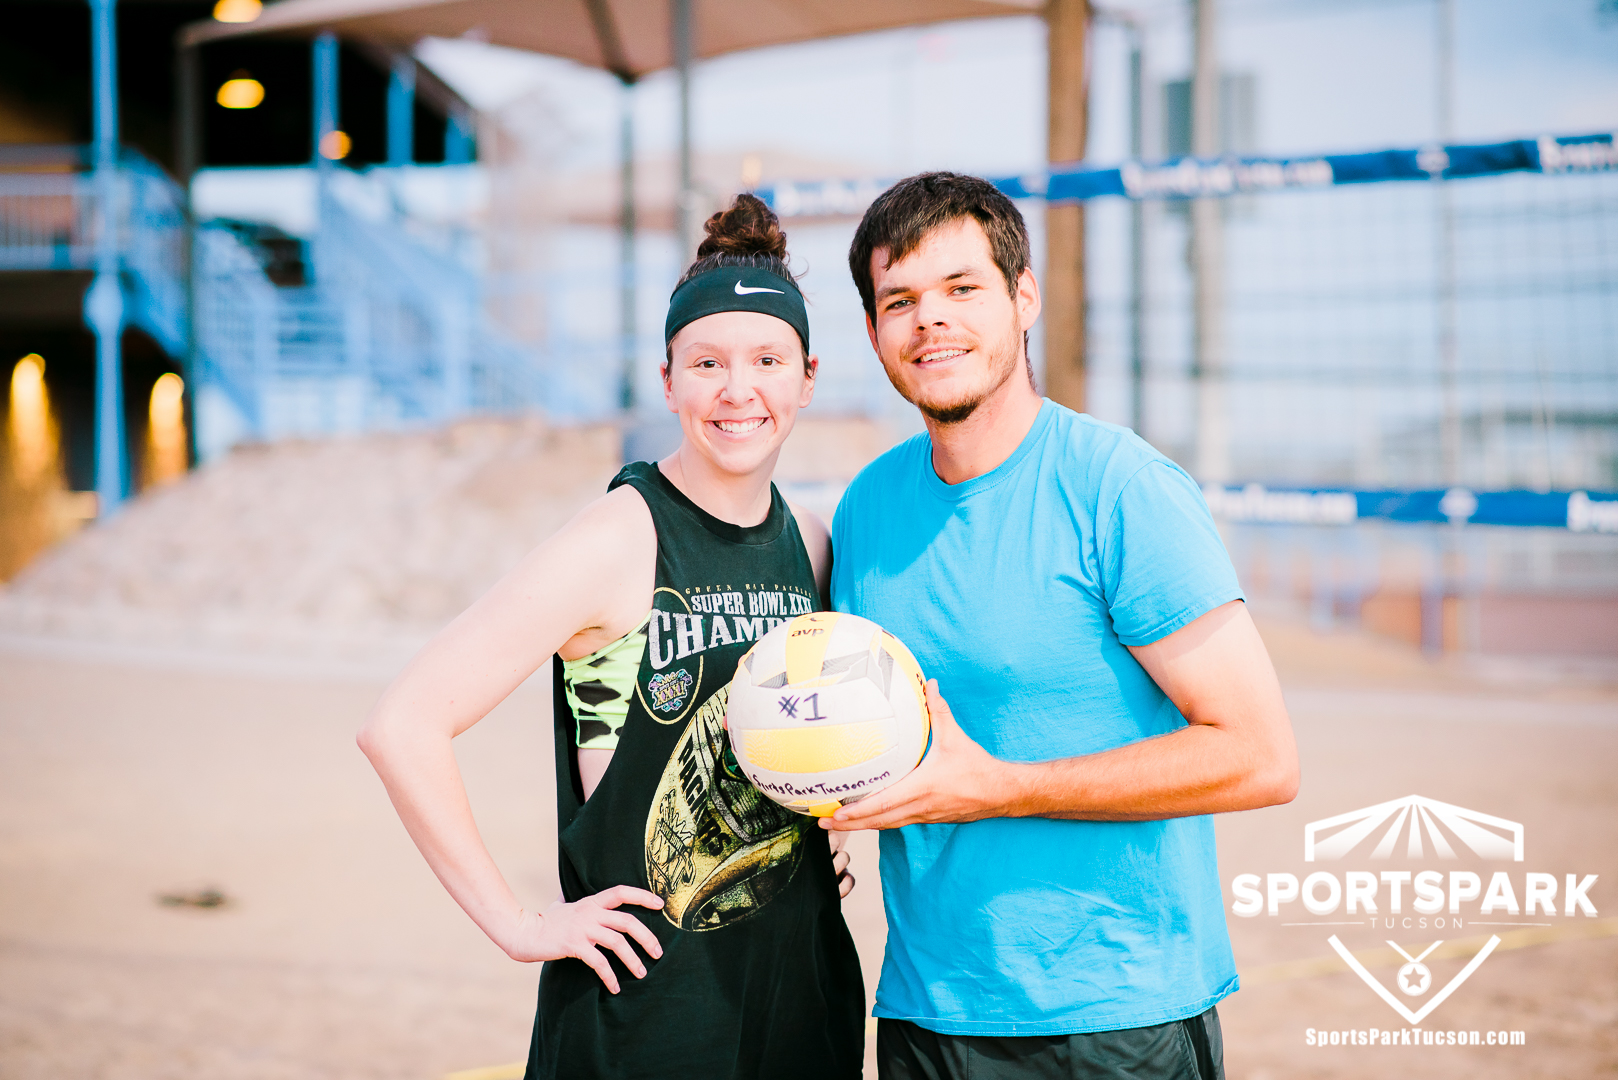 Volleyball Sun Co-ed 2v2 - A/B, Team: New Kids on the Block